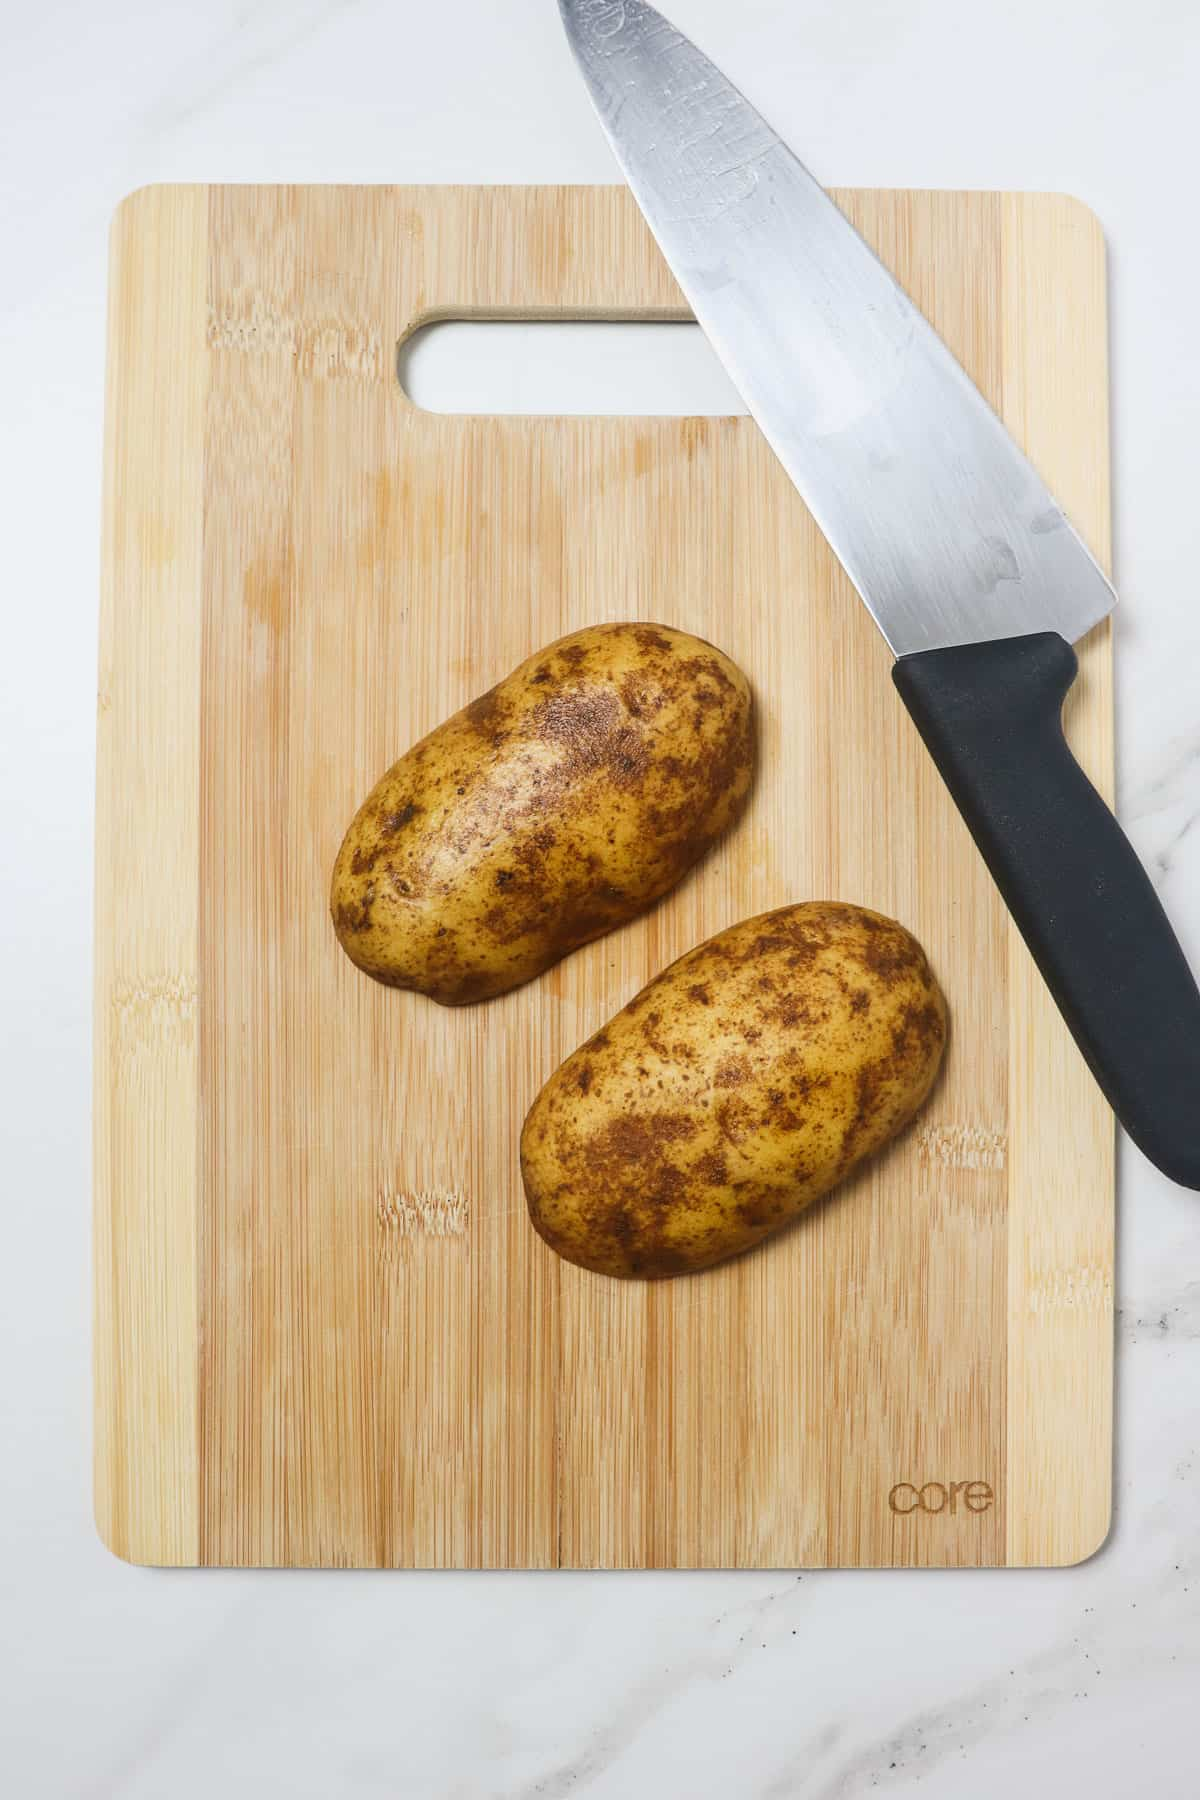 potato sliced in half on a wood cutting board